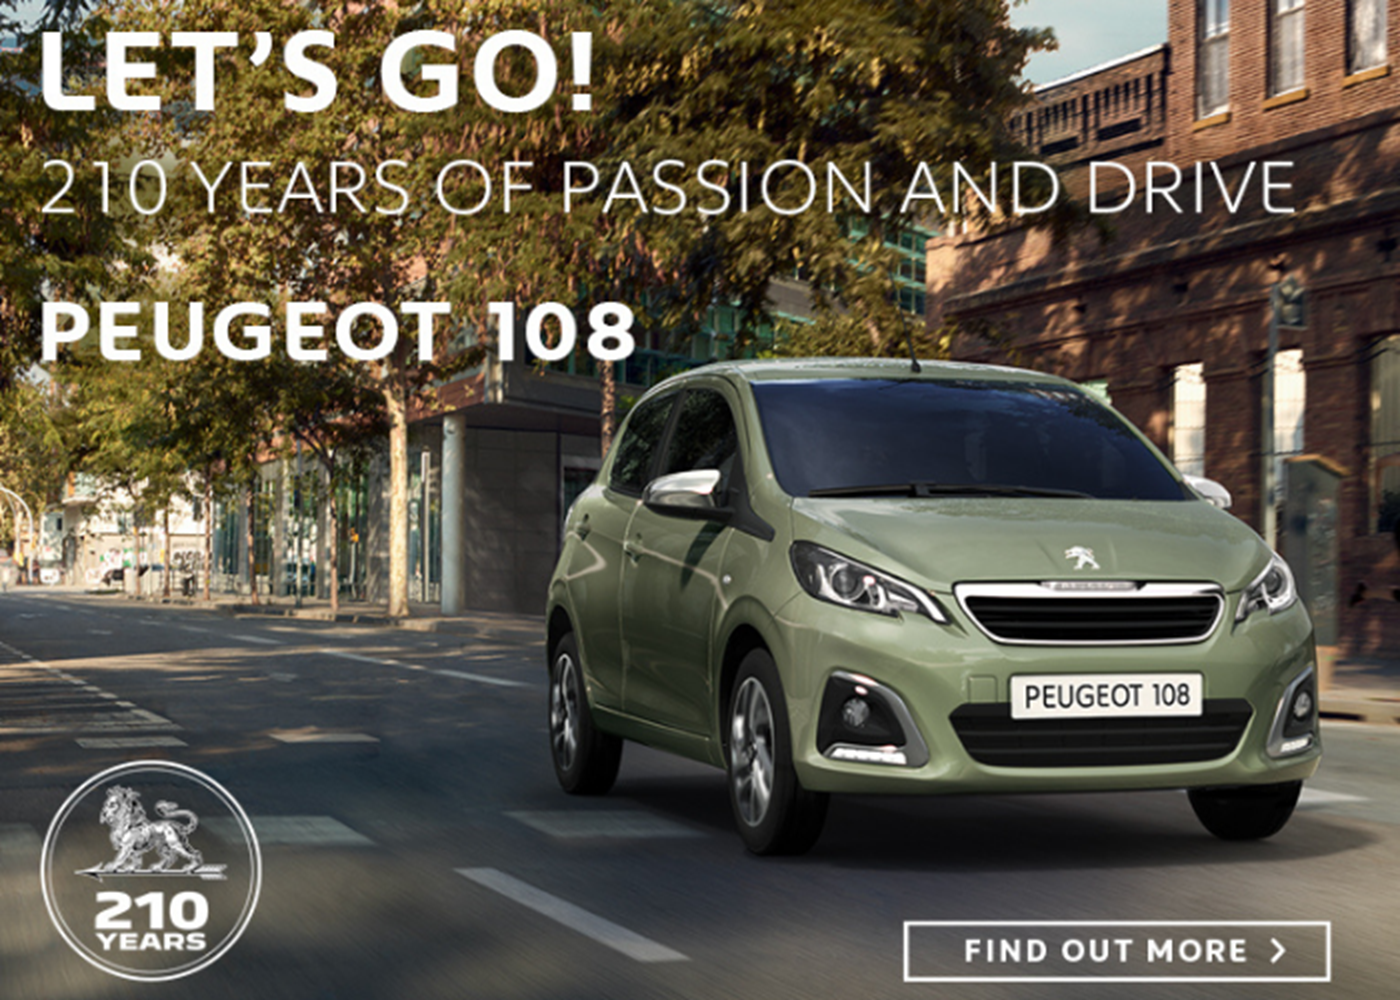 Peugeot 108 at Chippenham Motor Company